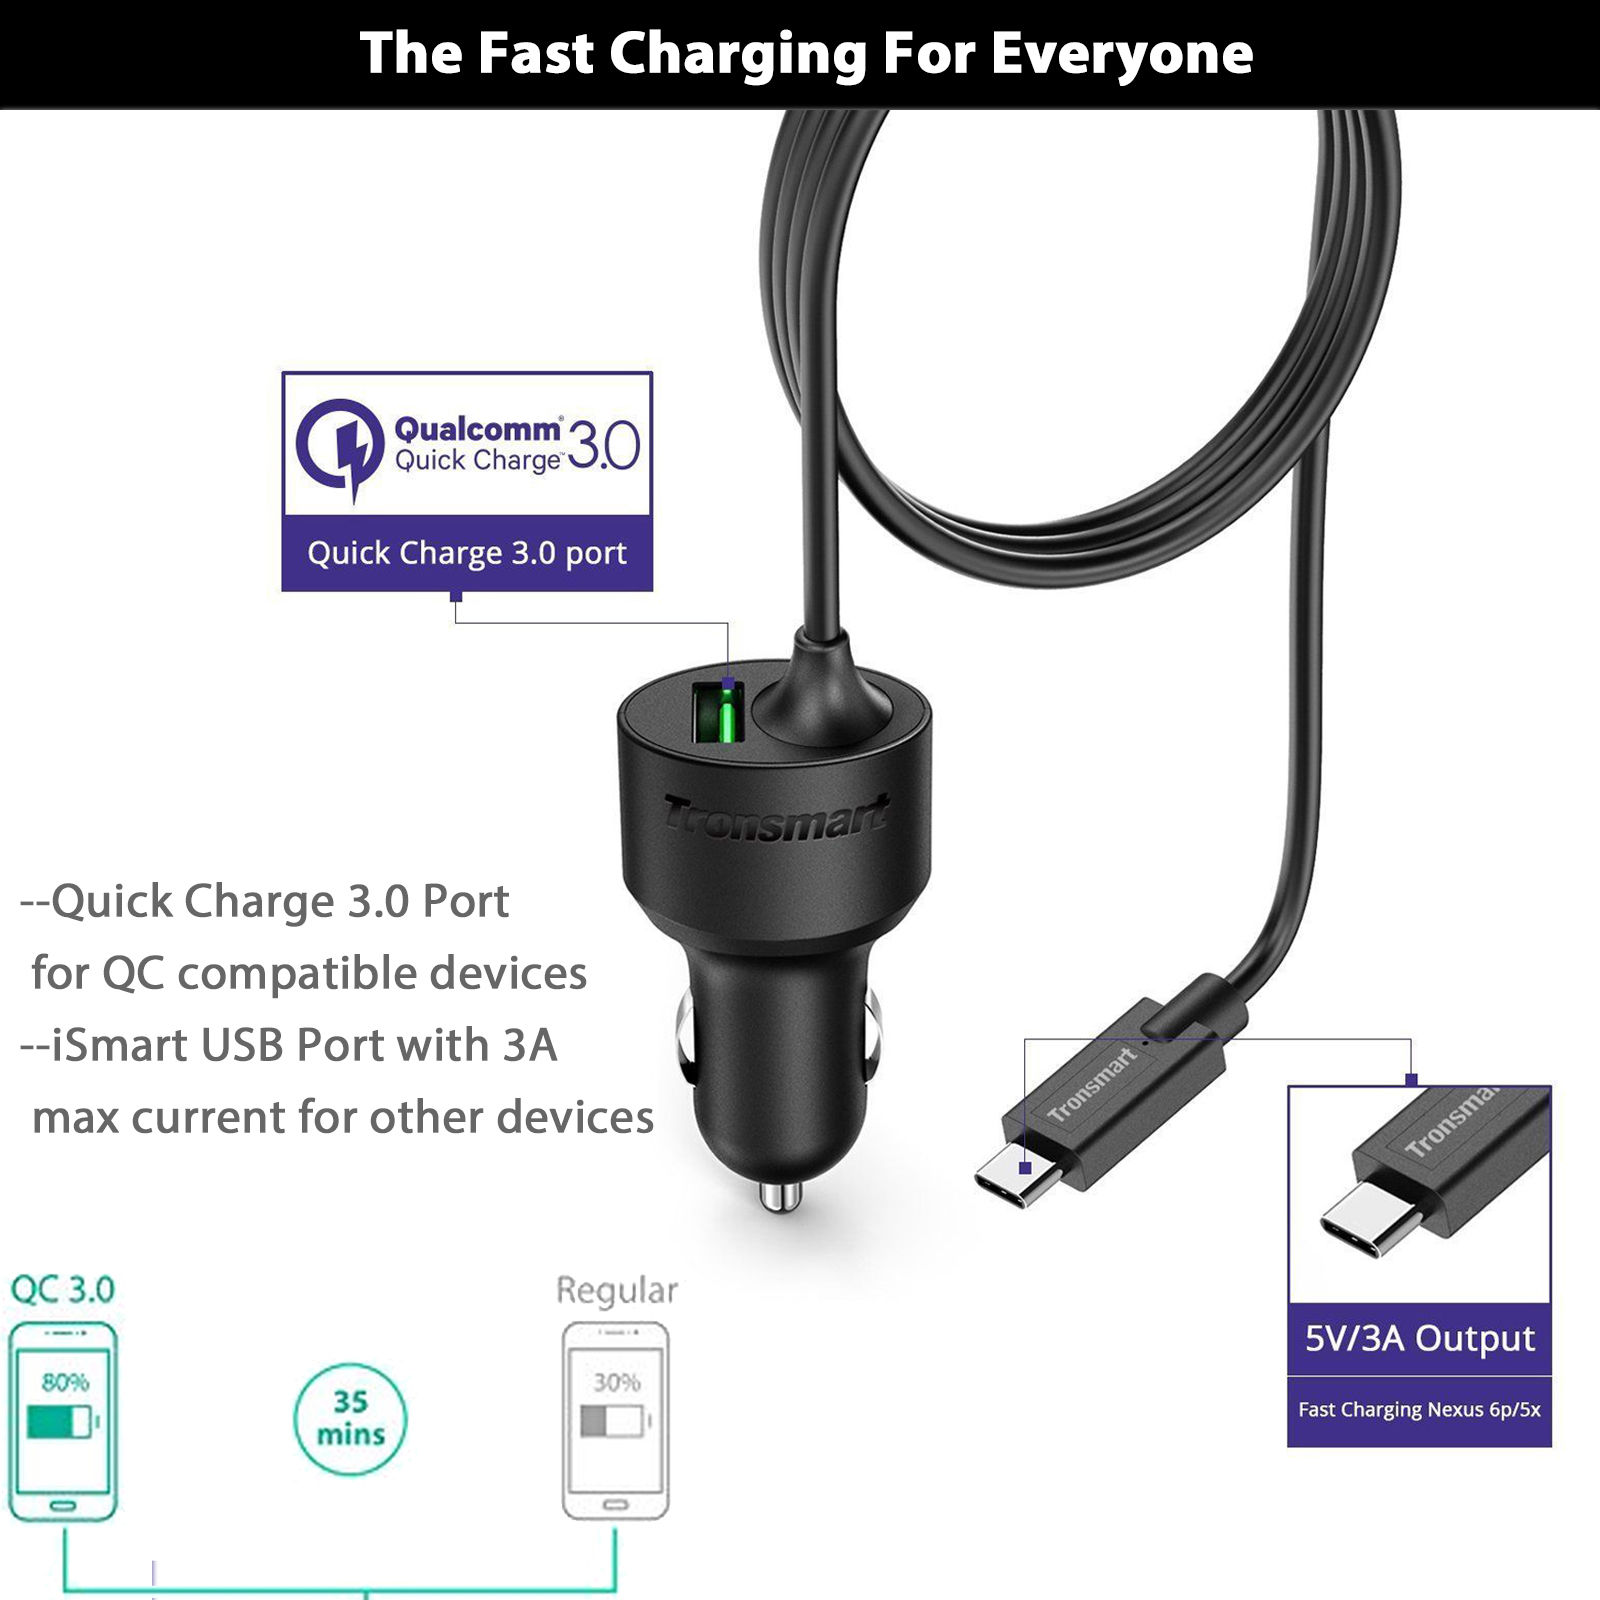 Tronsmart Qualcomm Quick Charge 3 Michaelieclark 30 42w Port Charger W3pta Certified 0 3a